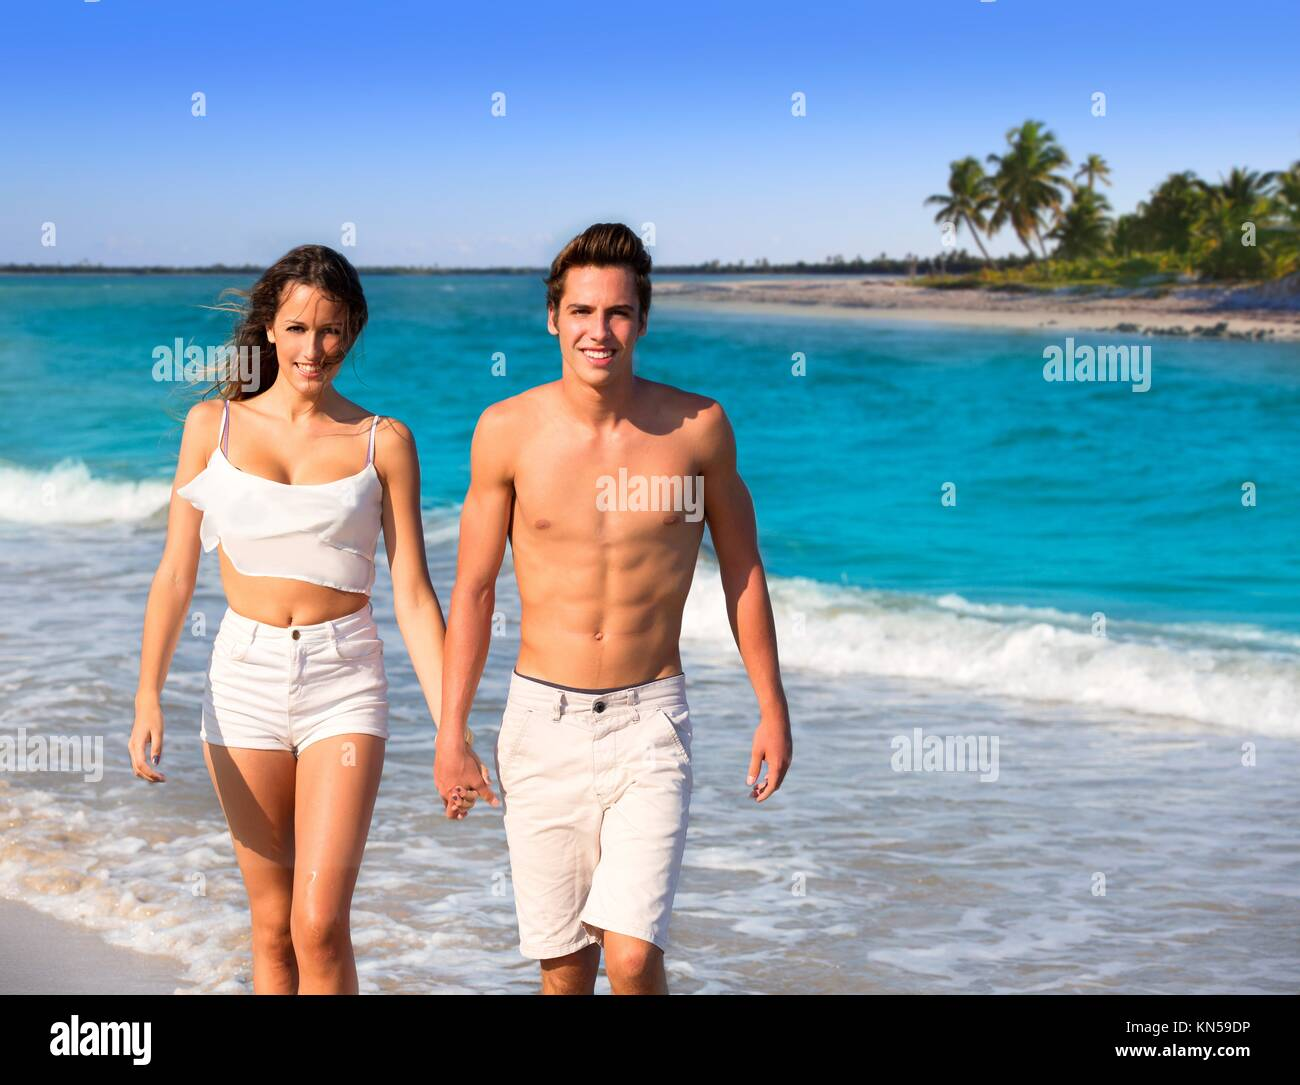 couple young tourists walking in a tropical Caribbean beach in Mexico photo mount. - Stock Image